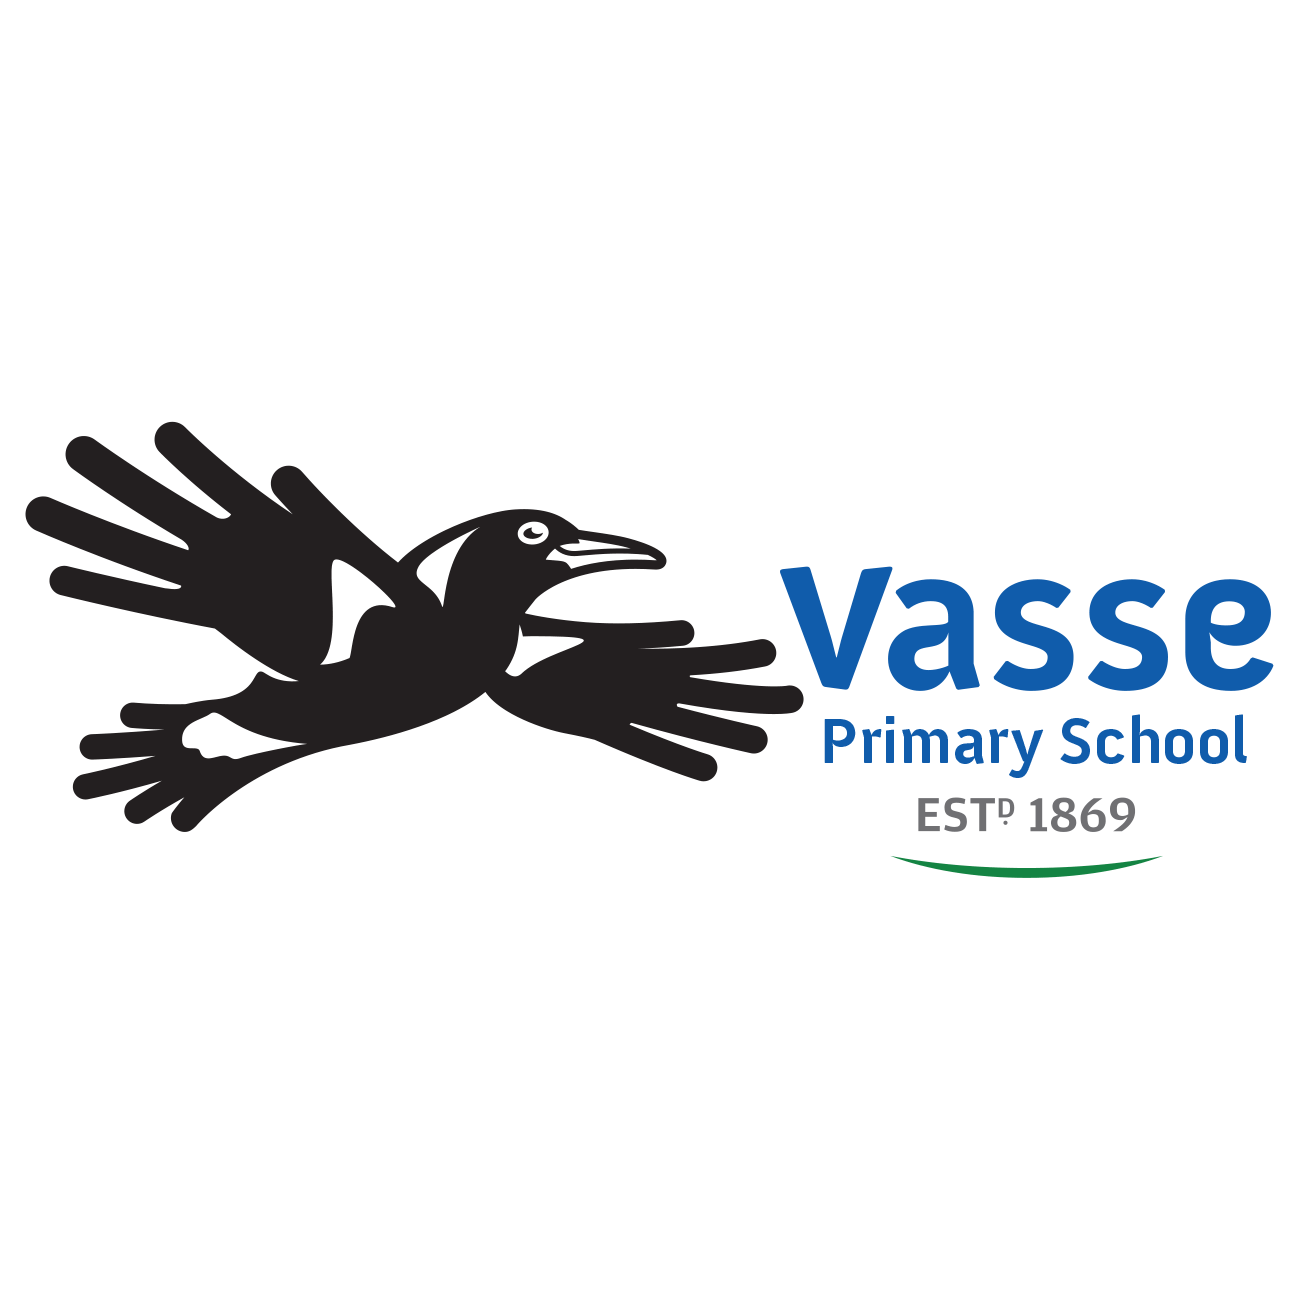 Student Semester 2 School Reports emailed out • Vasse